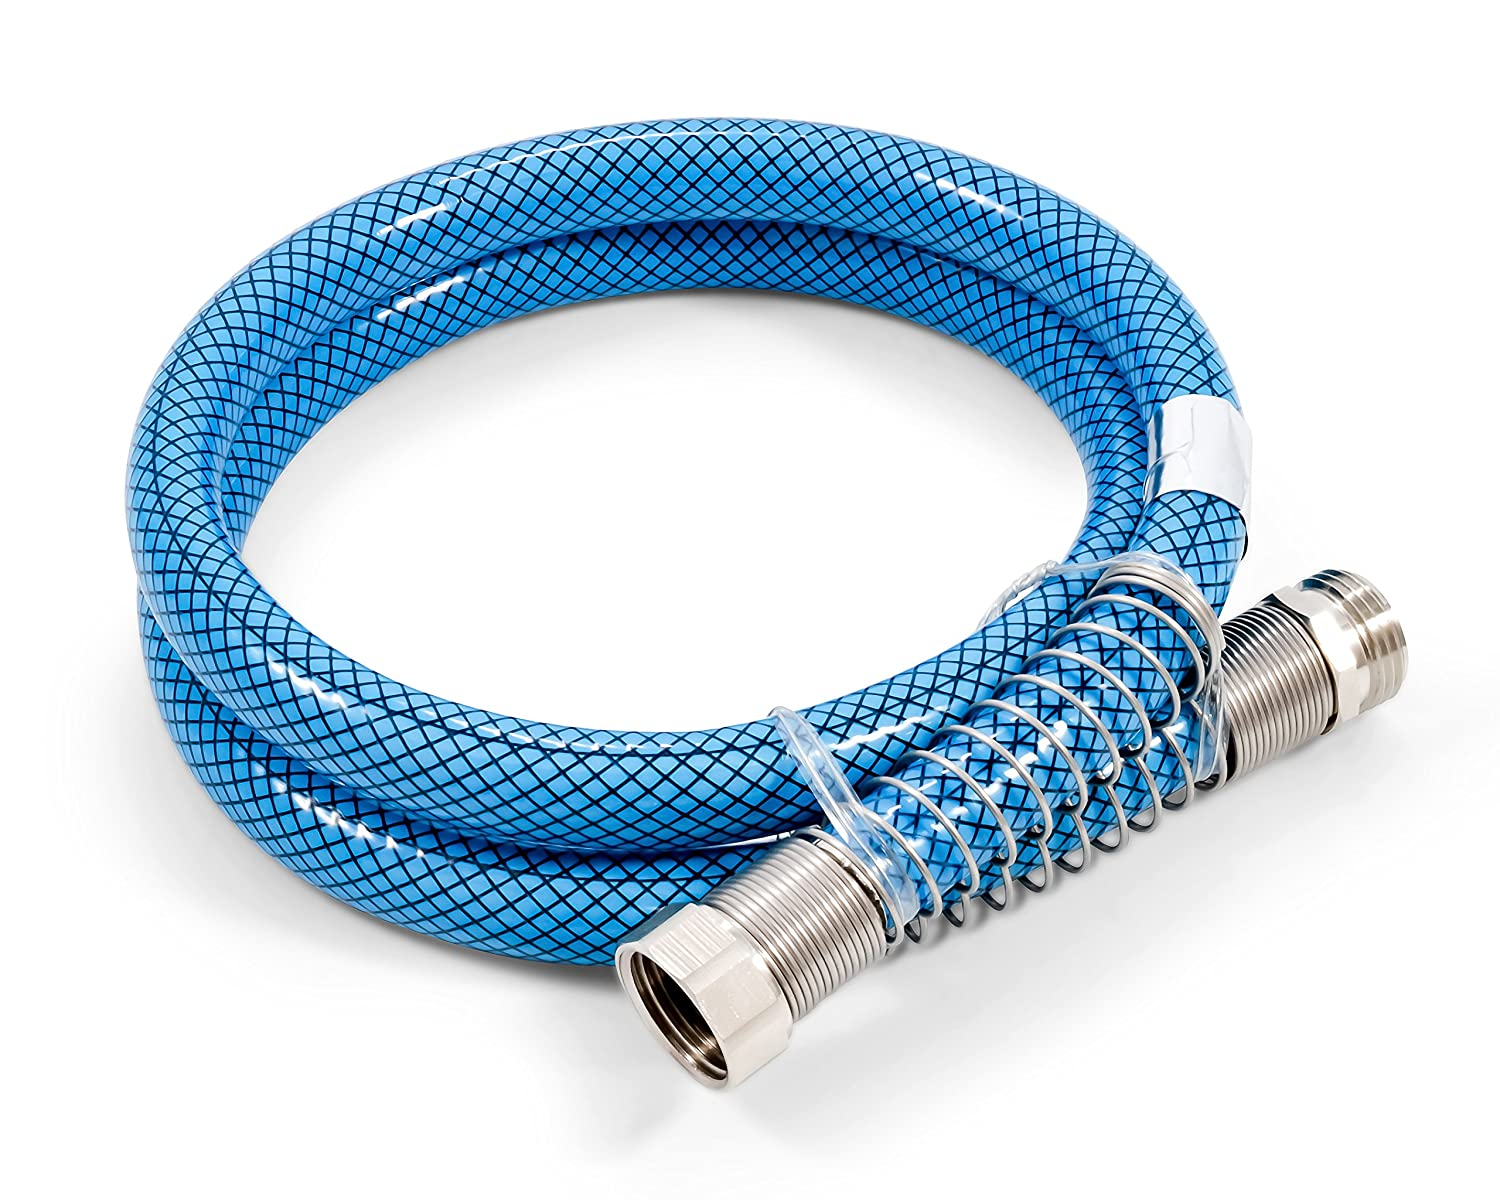 "Camco 22813 4ft Premium Drinking Water Hose - Lead and BPA Free, Anti-Kink Design, 20% Thicker Than Standard Hoses 5/8"" Inside Diameter, 4 Feet"